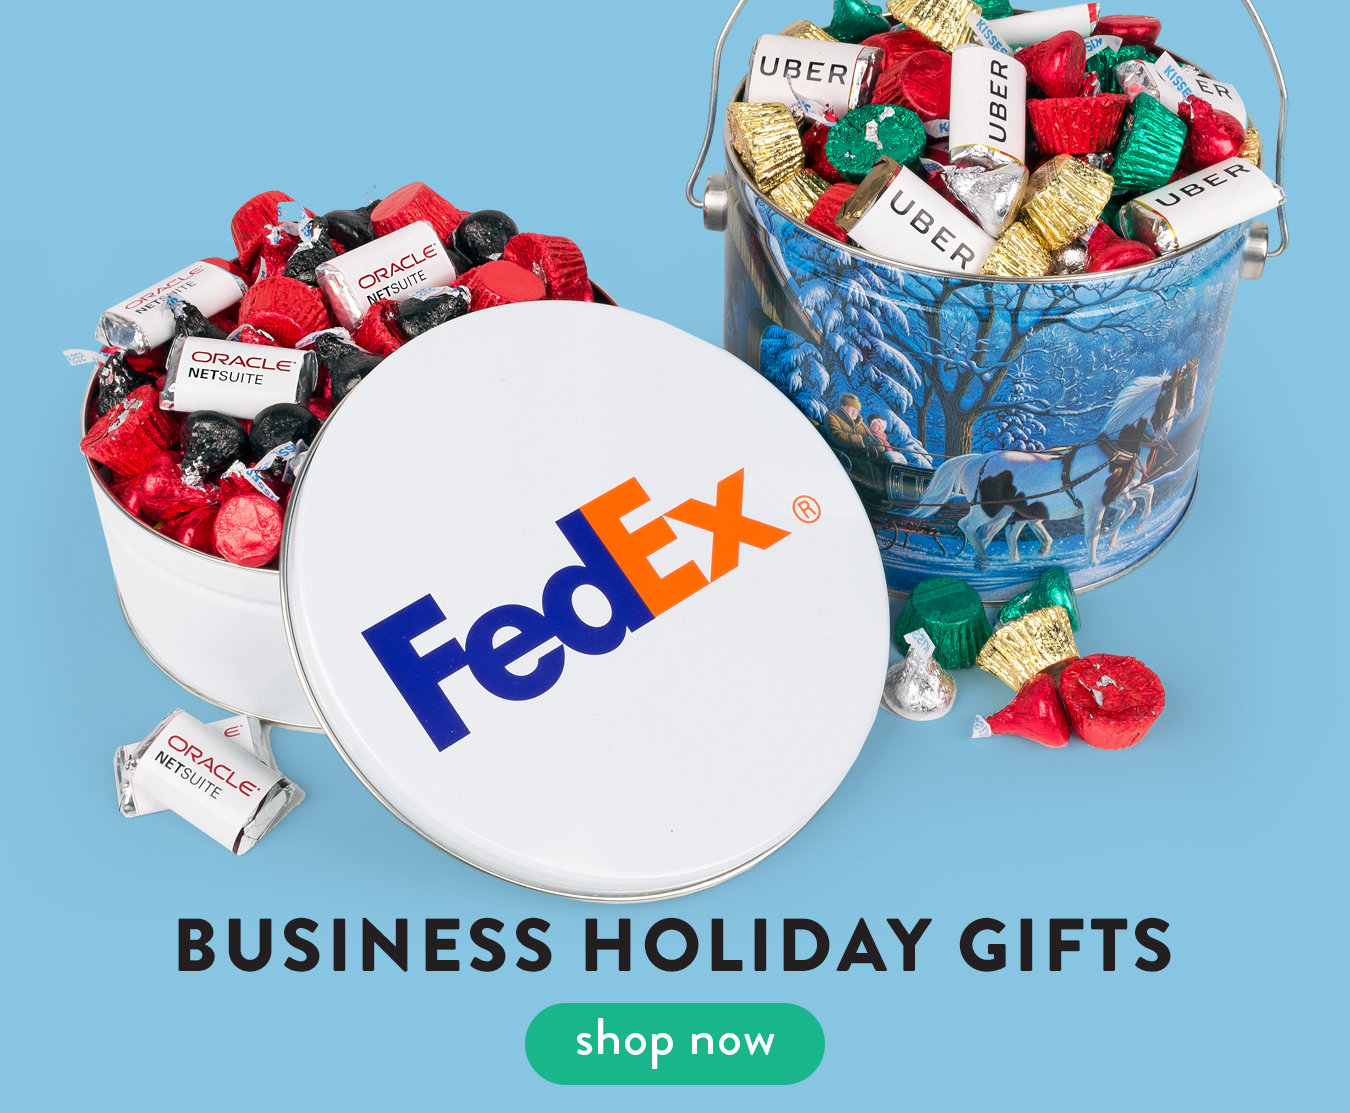 Business Holiday GIfts